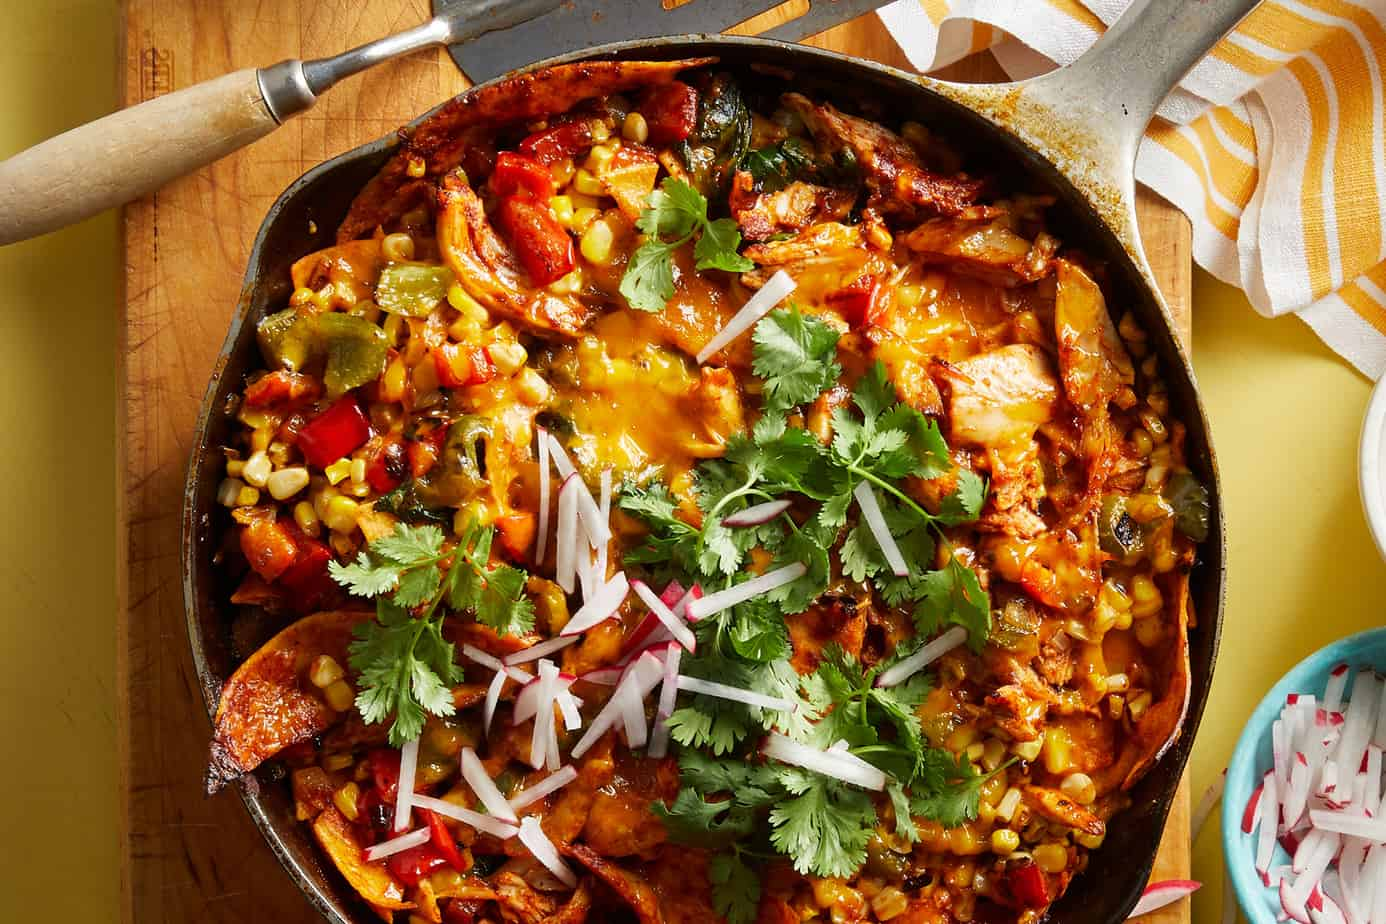 Enchilada Casserole in a Cast Iron Skillet for Healthy 5 Country Dinners: What to Cook (Feb 1)